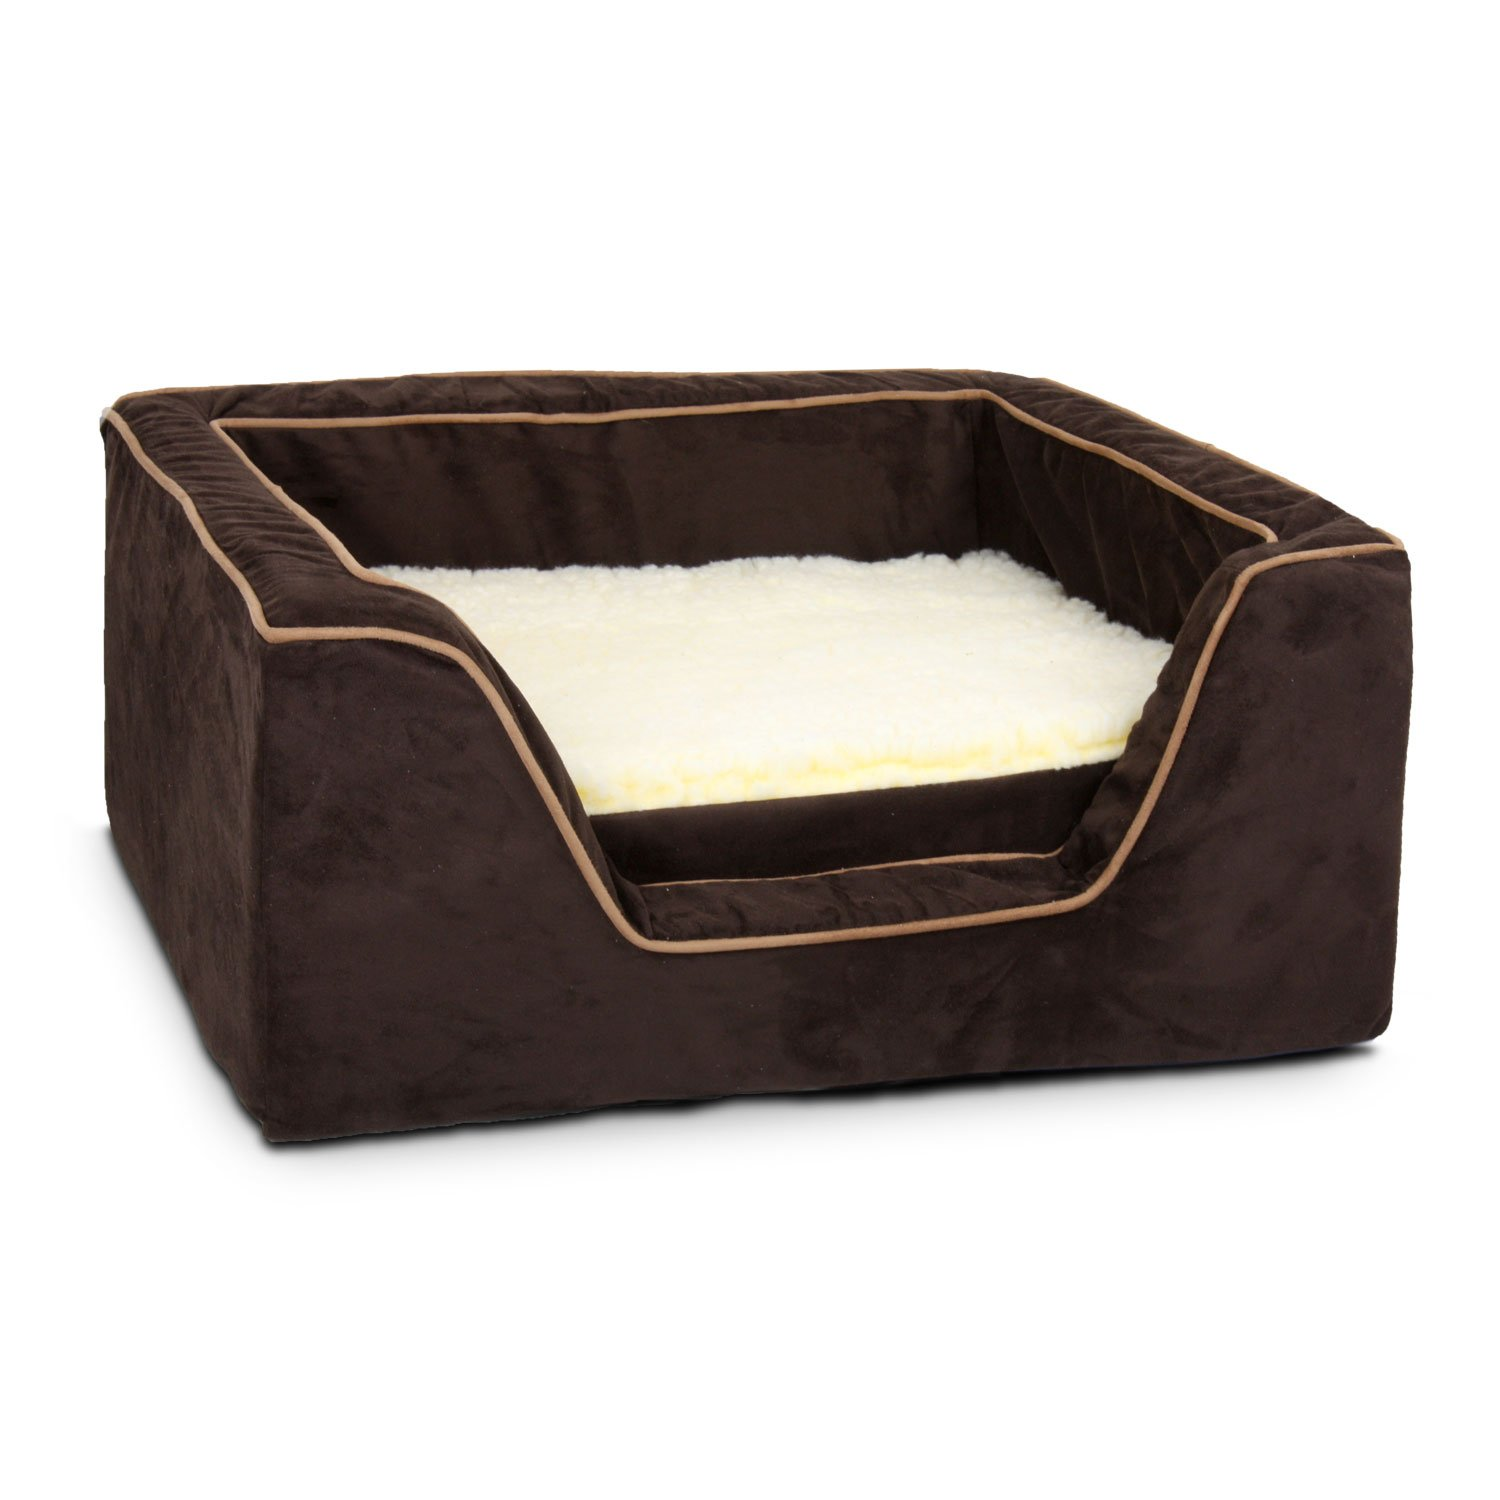 Snoozer Luxury Square Bed with Memory Foam in Hot Fudge with Cafe Cording 23 L x 19 W Medium Brown